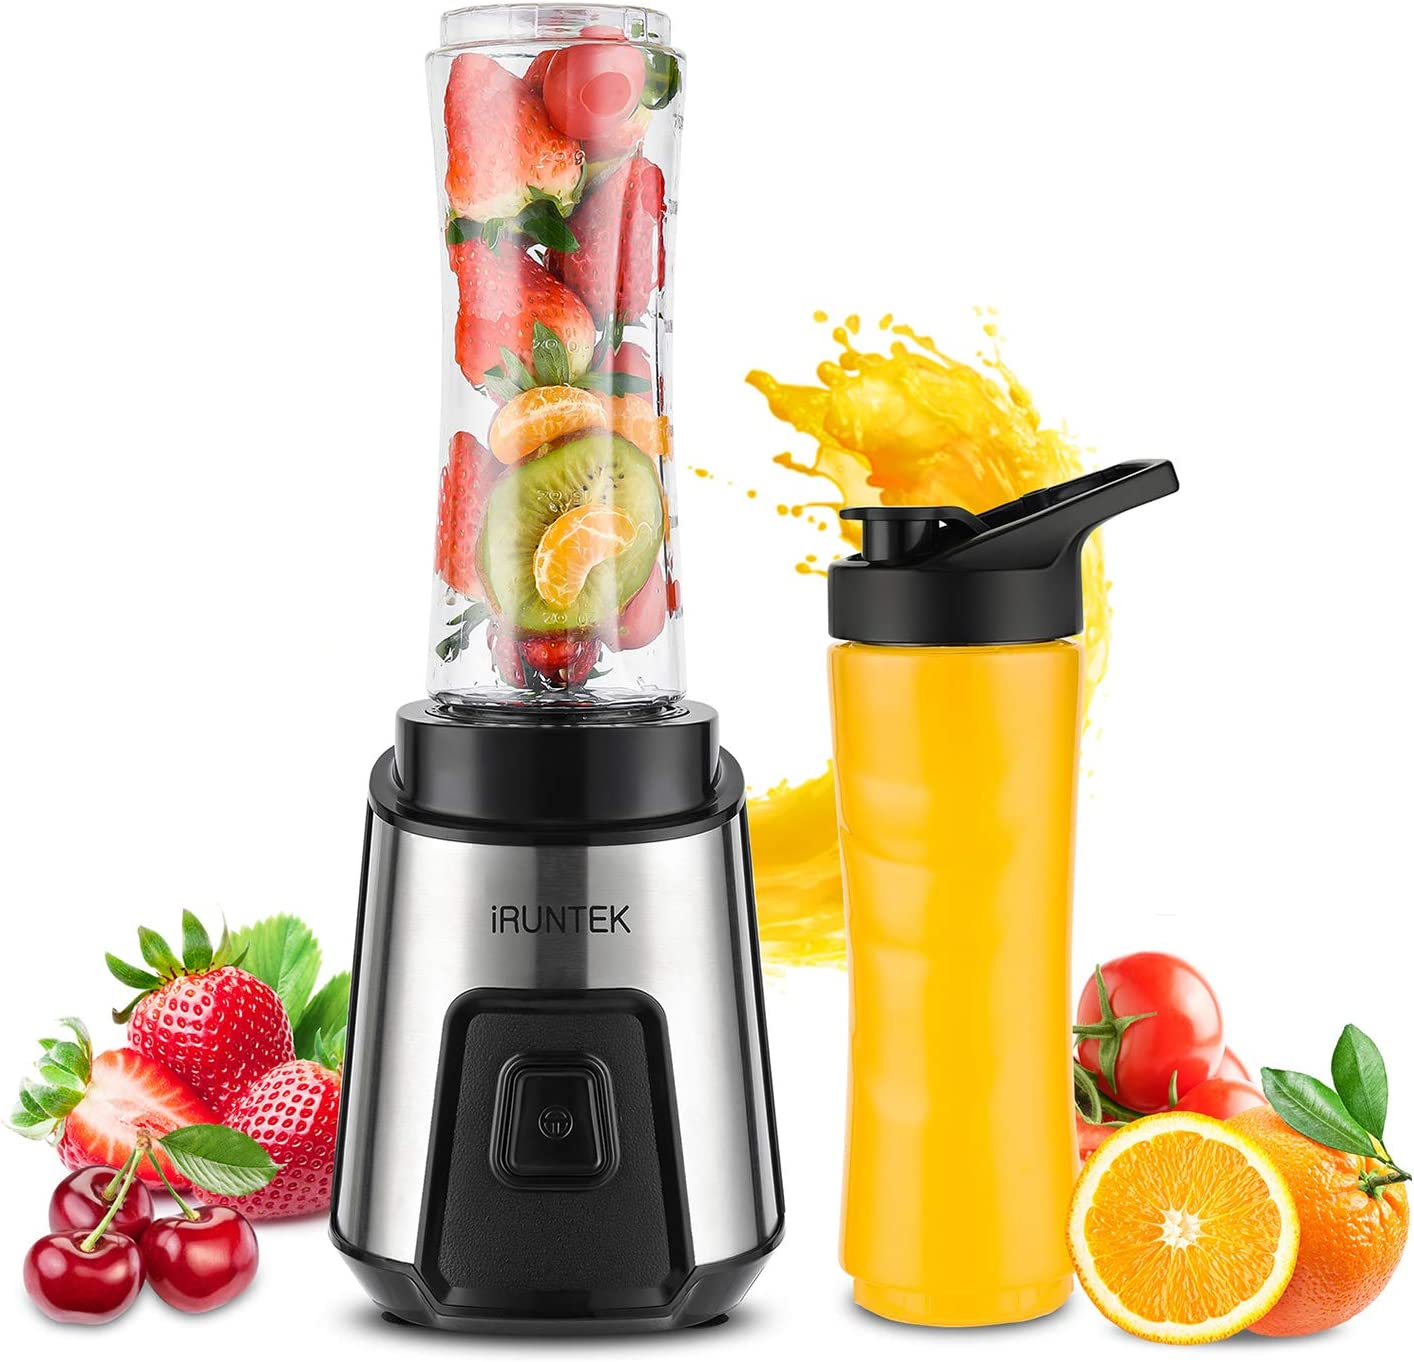 iRUNTEK Personal Blender for Shakes and Smoothies, Small Countertop Blender for Kitchen, Food Processer for juice, jam, milkshake with 250 -Watt Stainless Steel Base and 20-Ounce BPA Free Tritan Cup with Travel Spout Lid